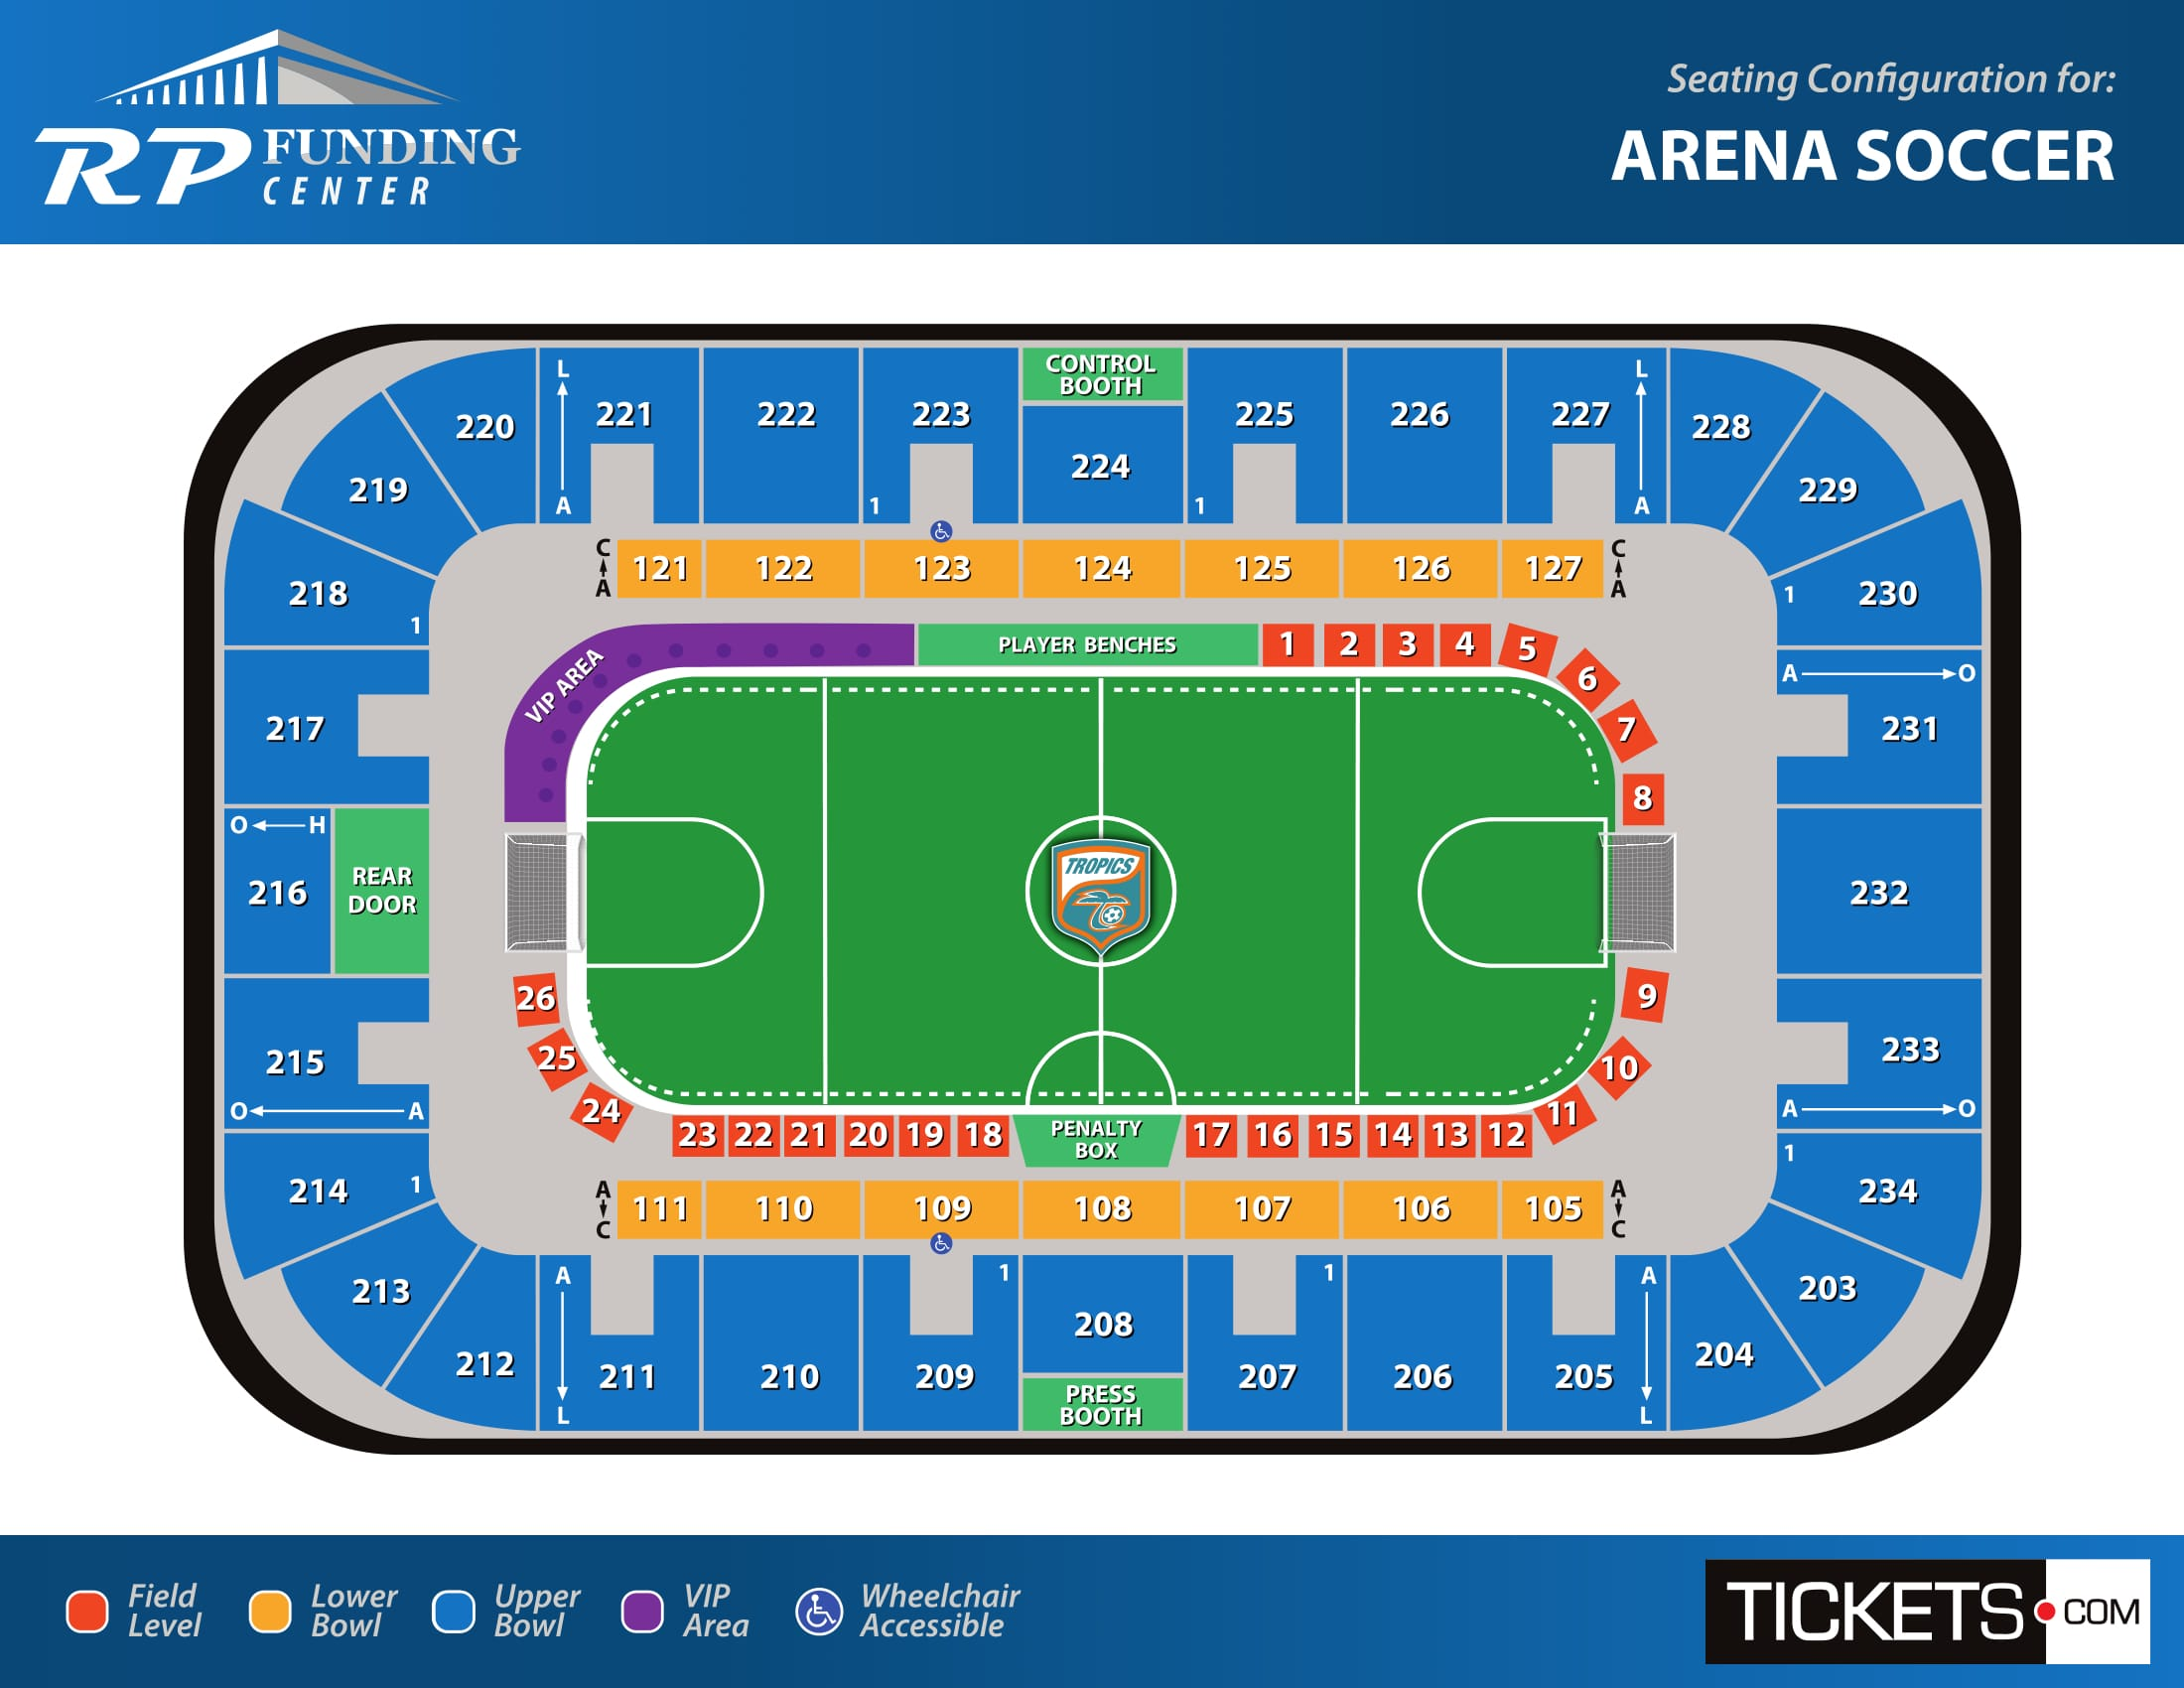 Arena soccer seating map